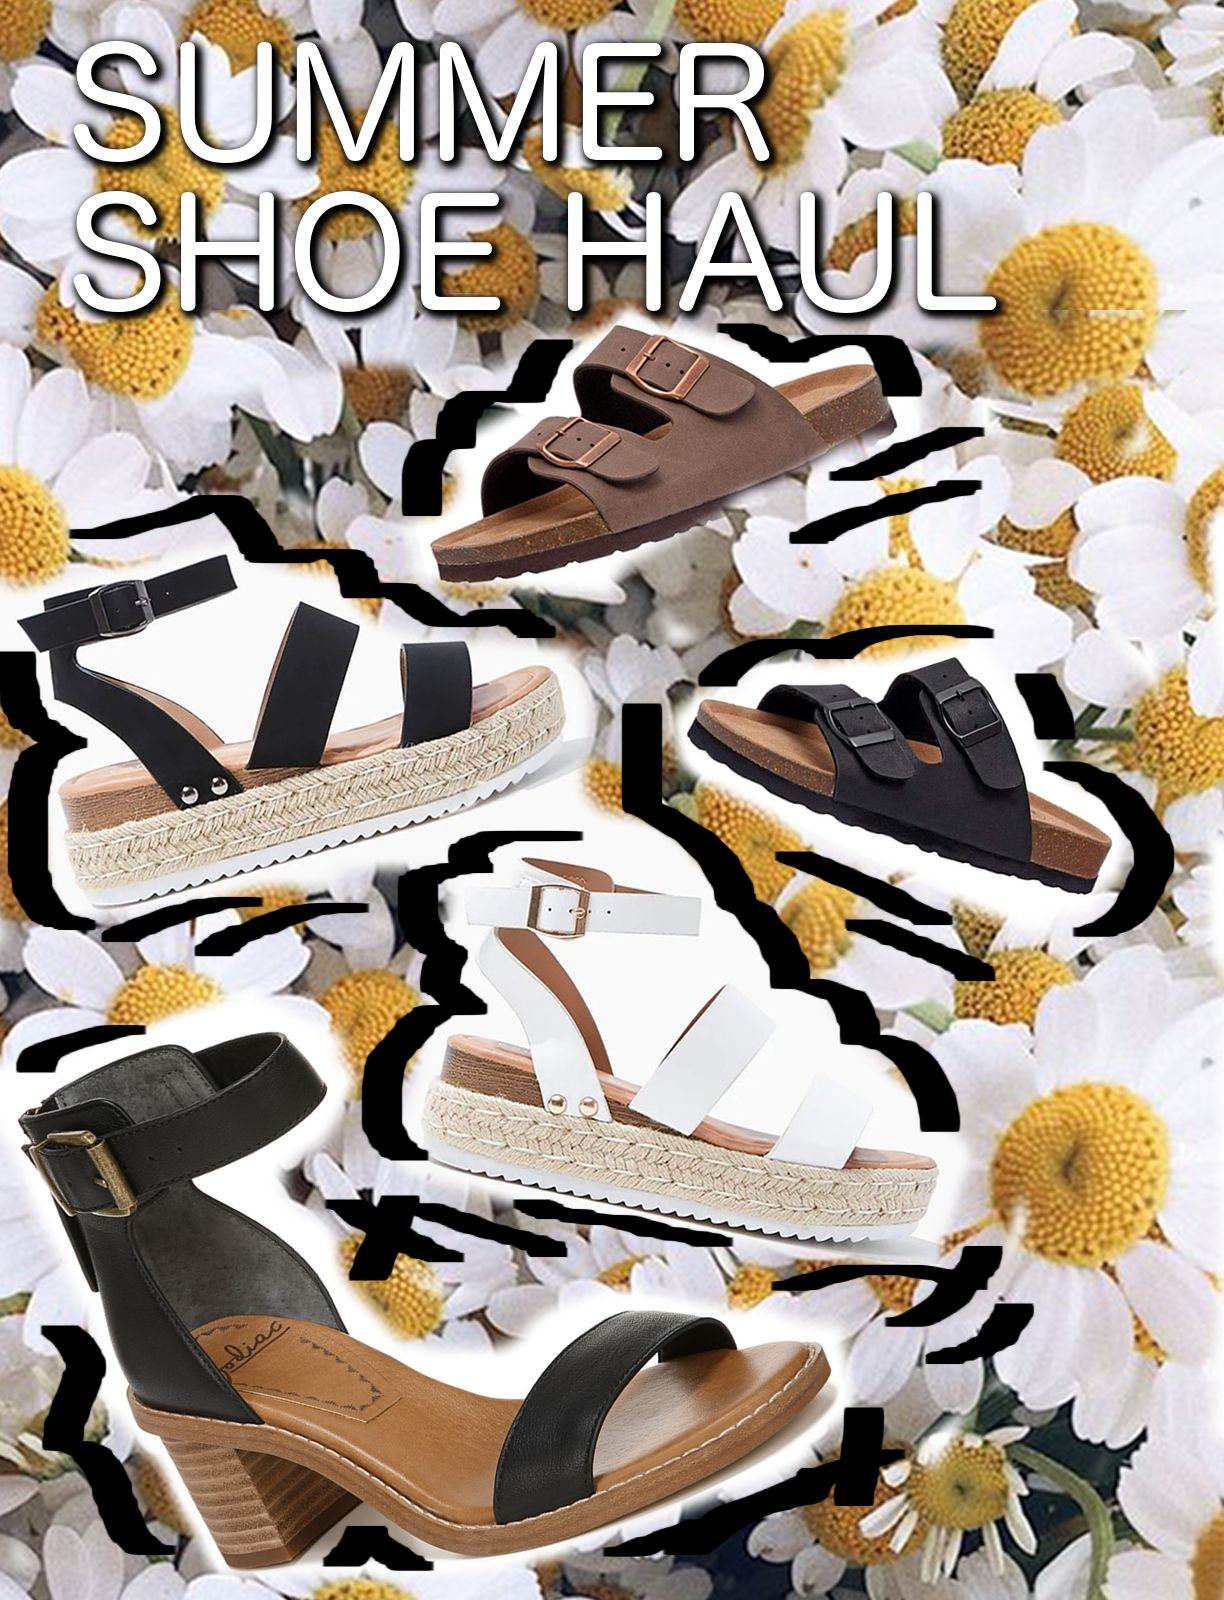 MOSTLY A SUMMER SHOE HAUL (most under $25!)